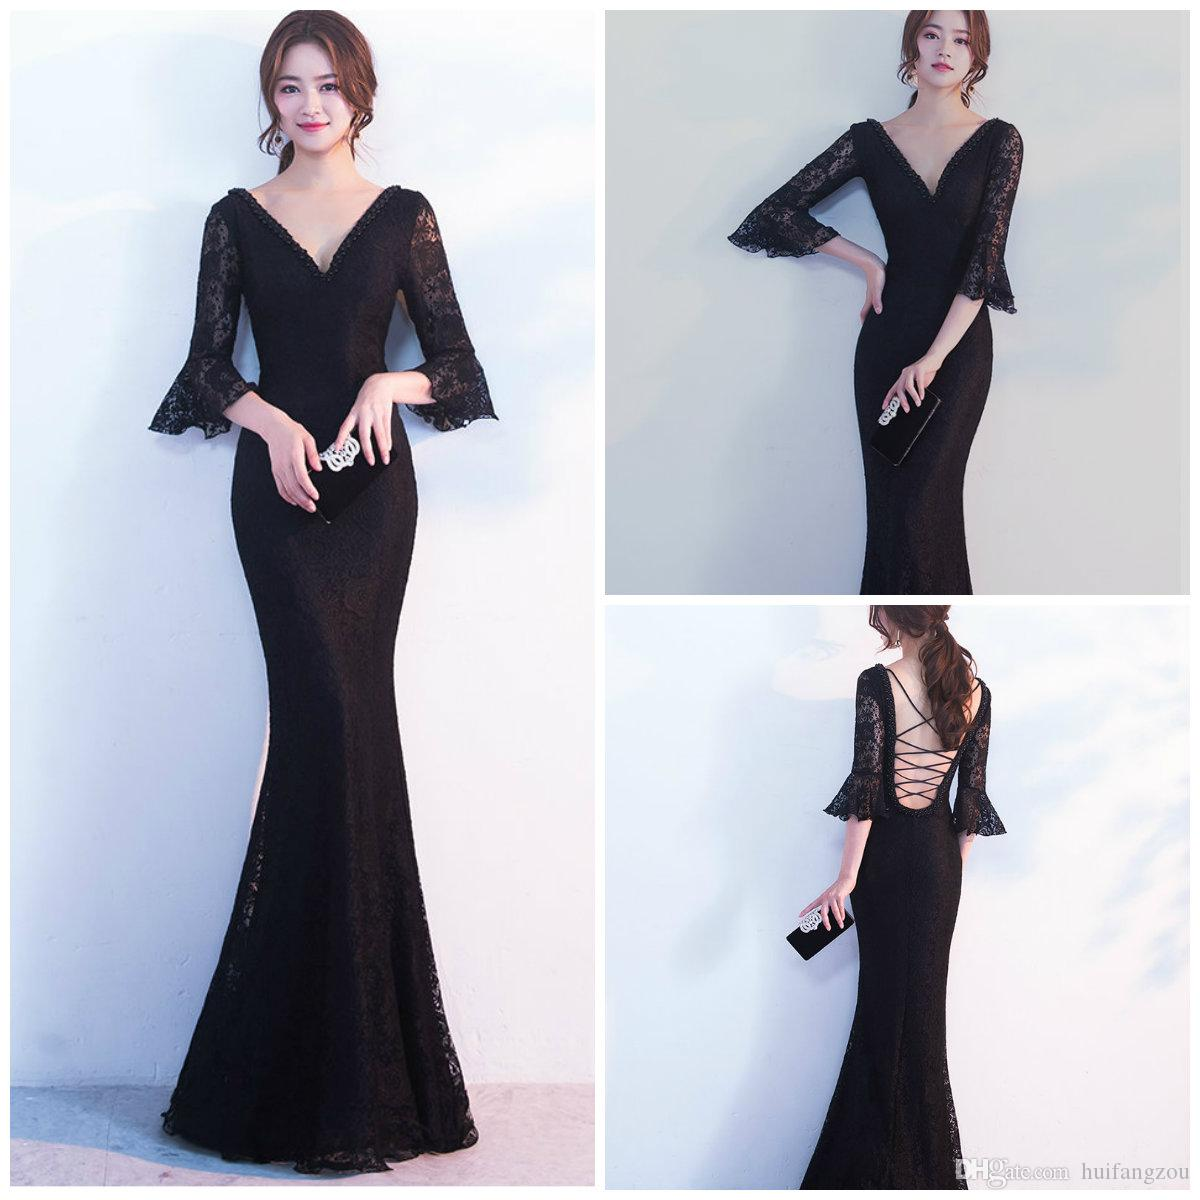 f695ab0baa3 Full Lace Mermaid Prom Dresses Sexy Cross Straps Back Design Floor Length  Evening Gowns V Neck Half Sleeve Formal Party Dresses Dress Womens Dresses  Evening ...